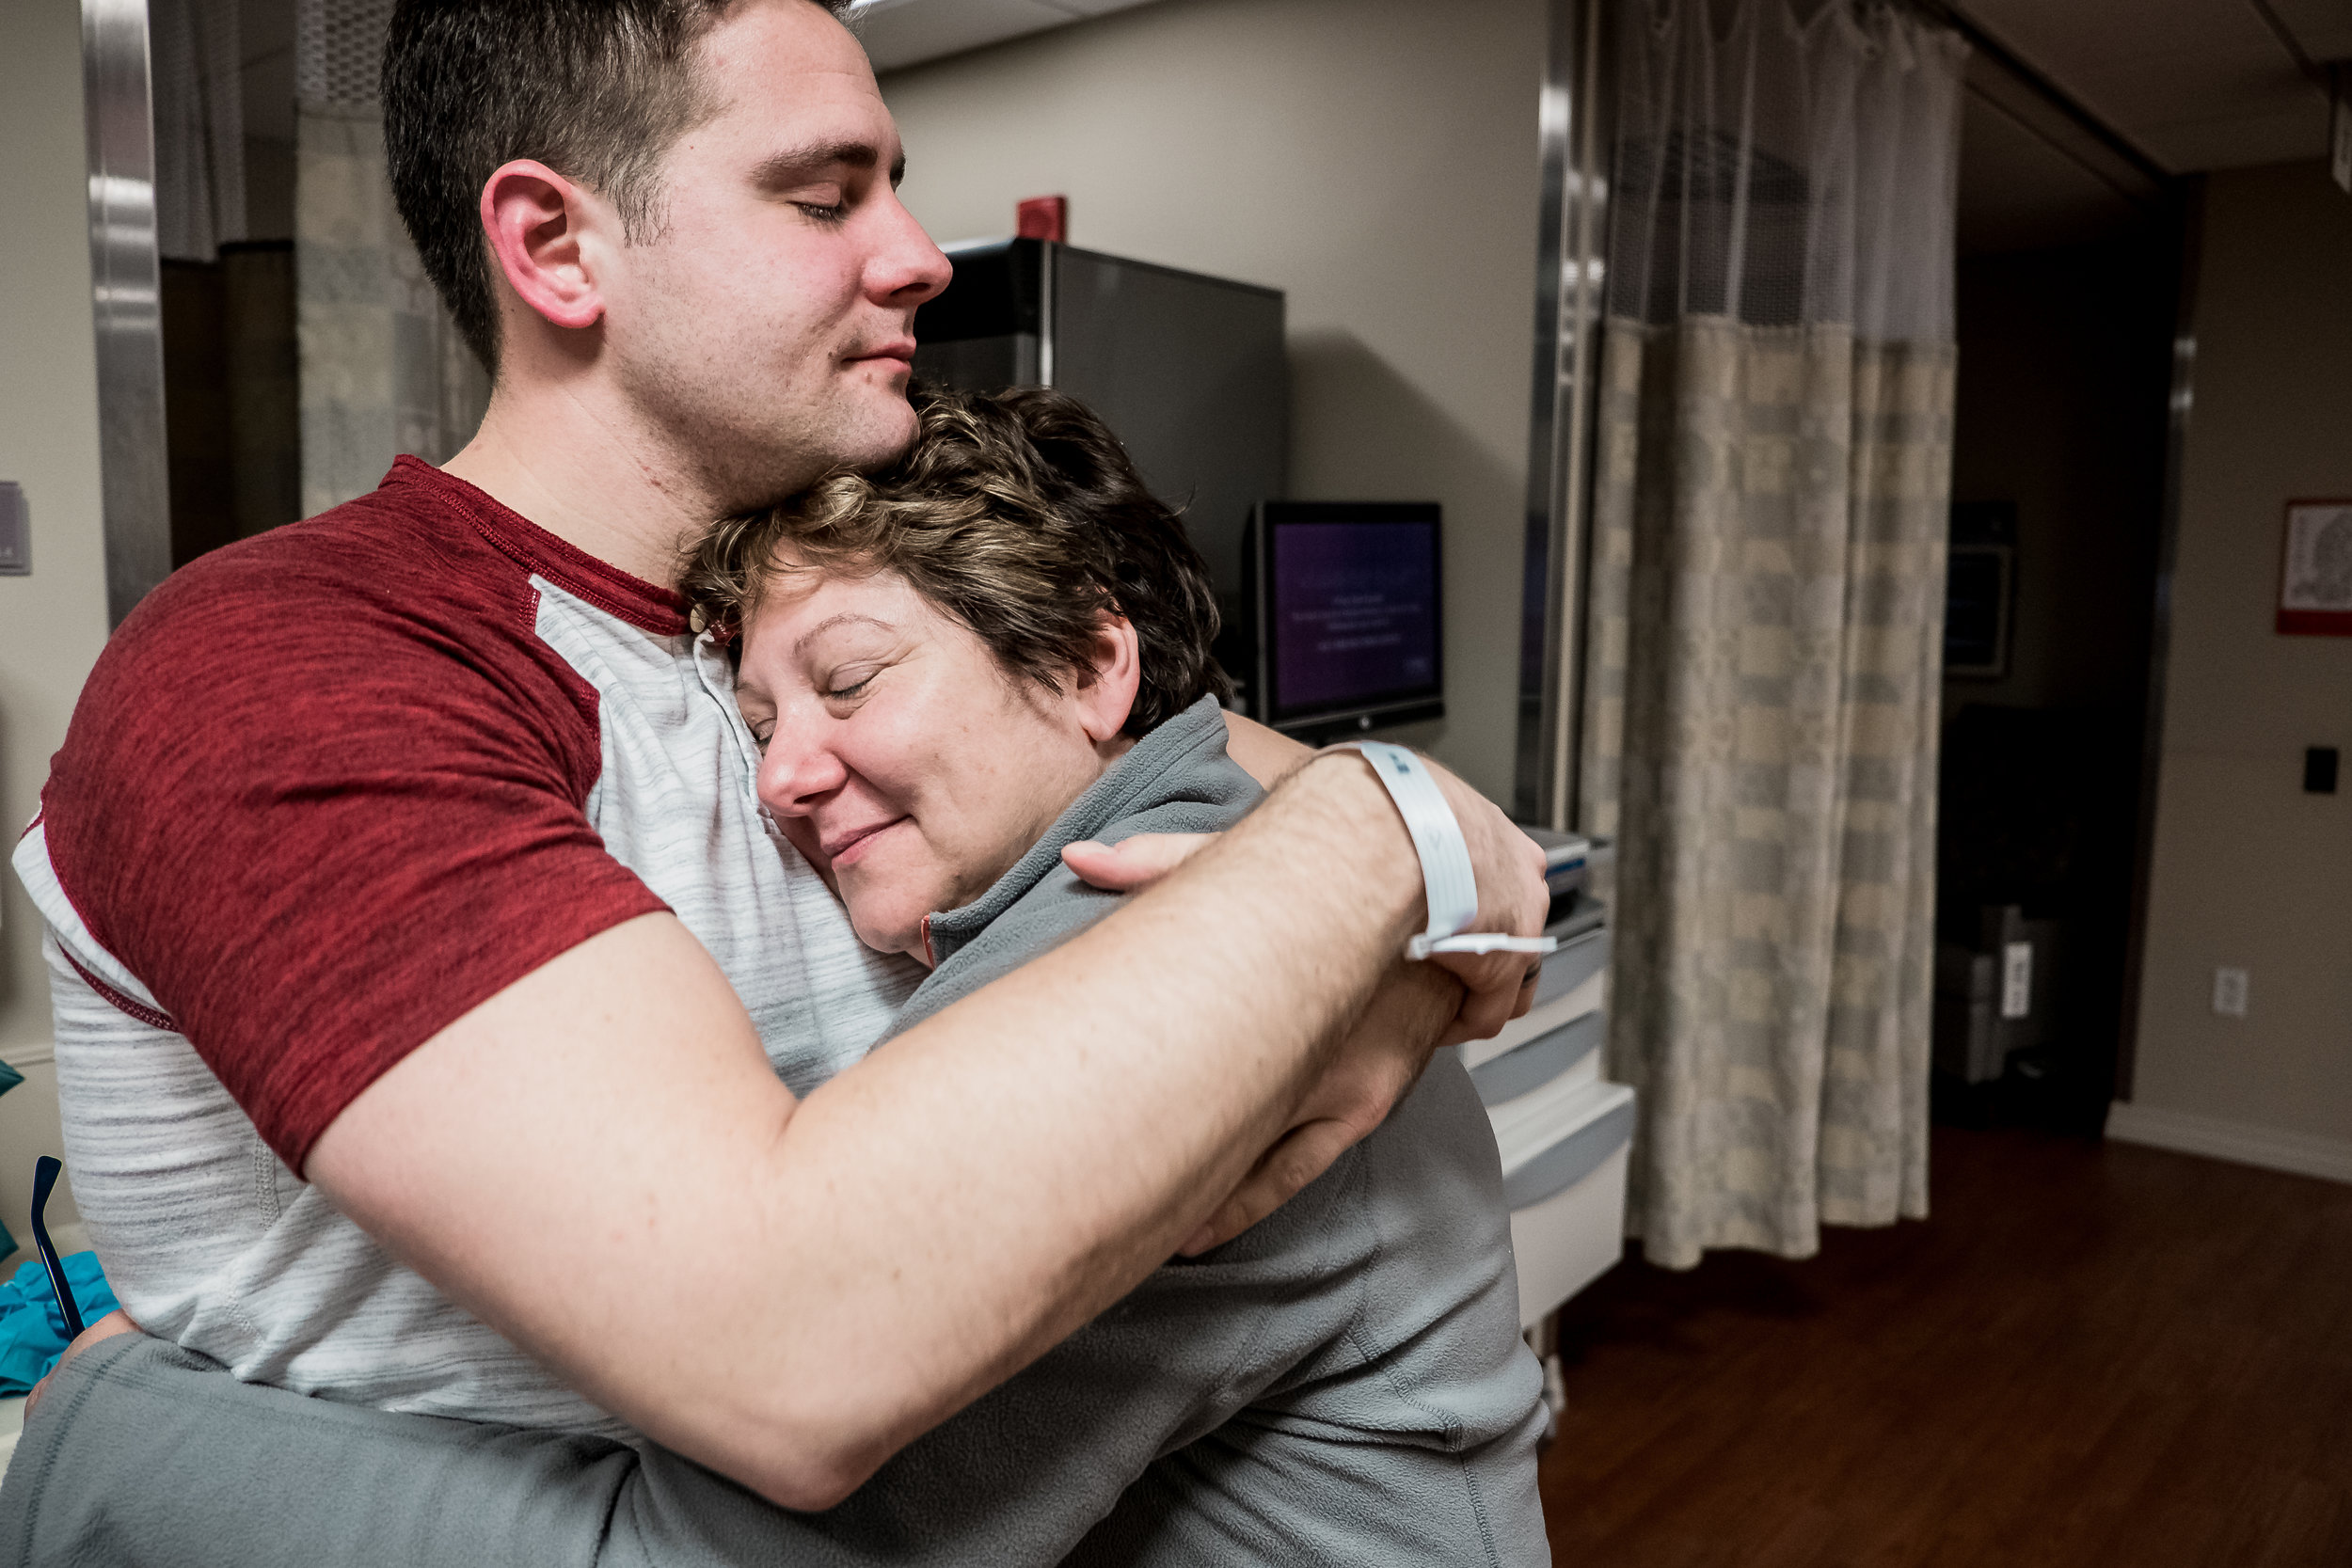 mother and son embracing after birth of baby